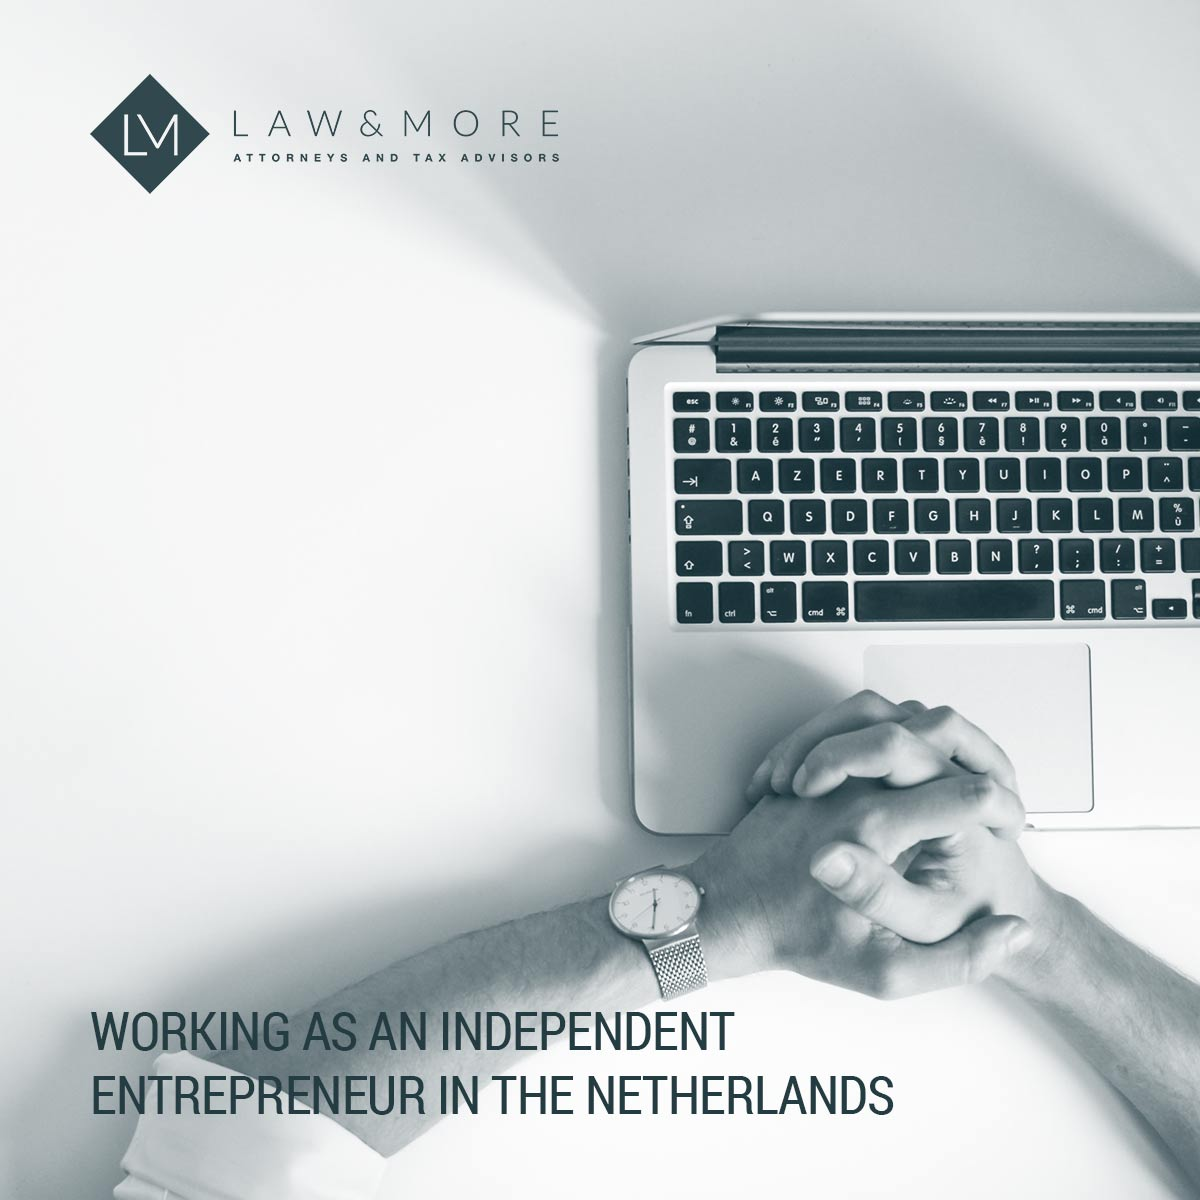 Working as an independent entrepreneur in the Netherlands